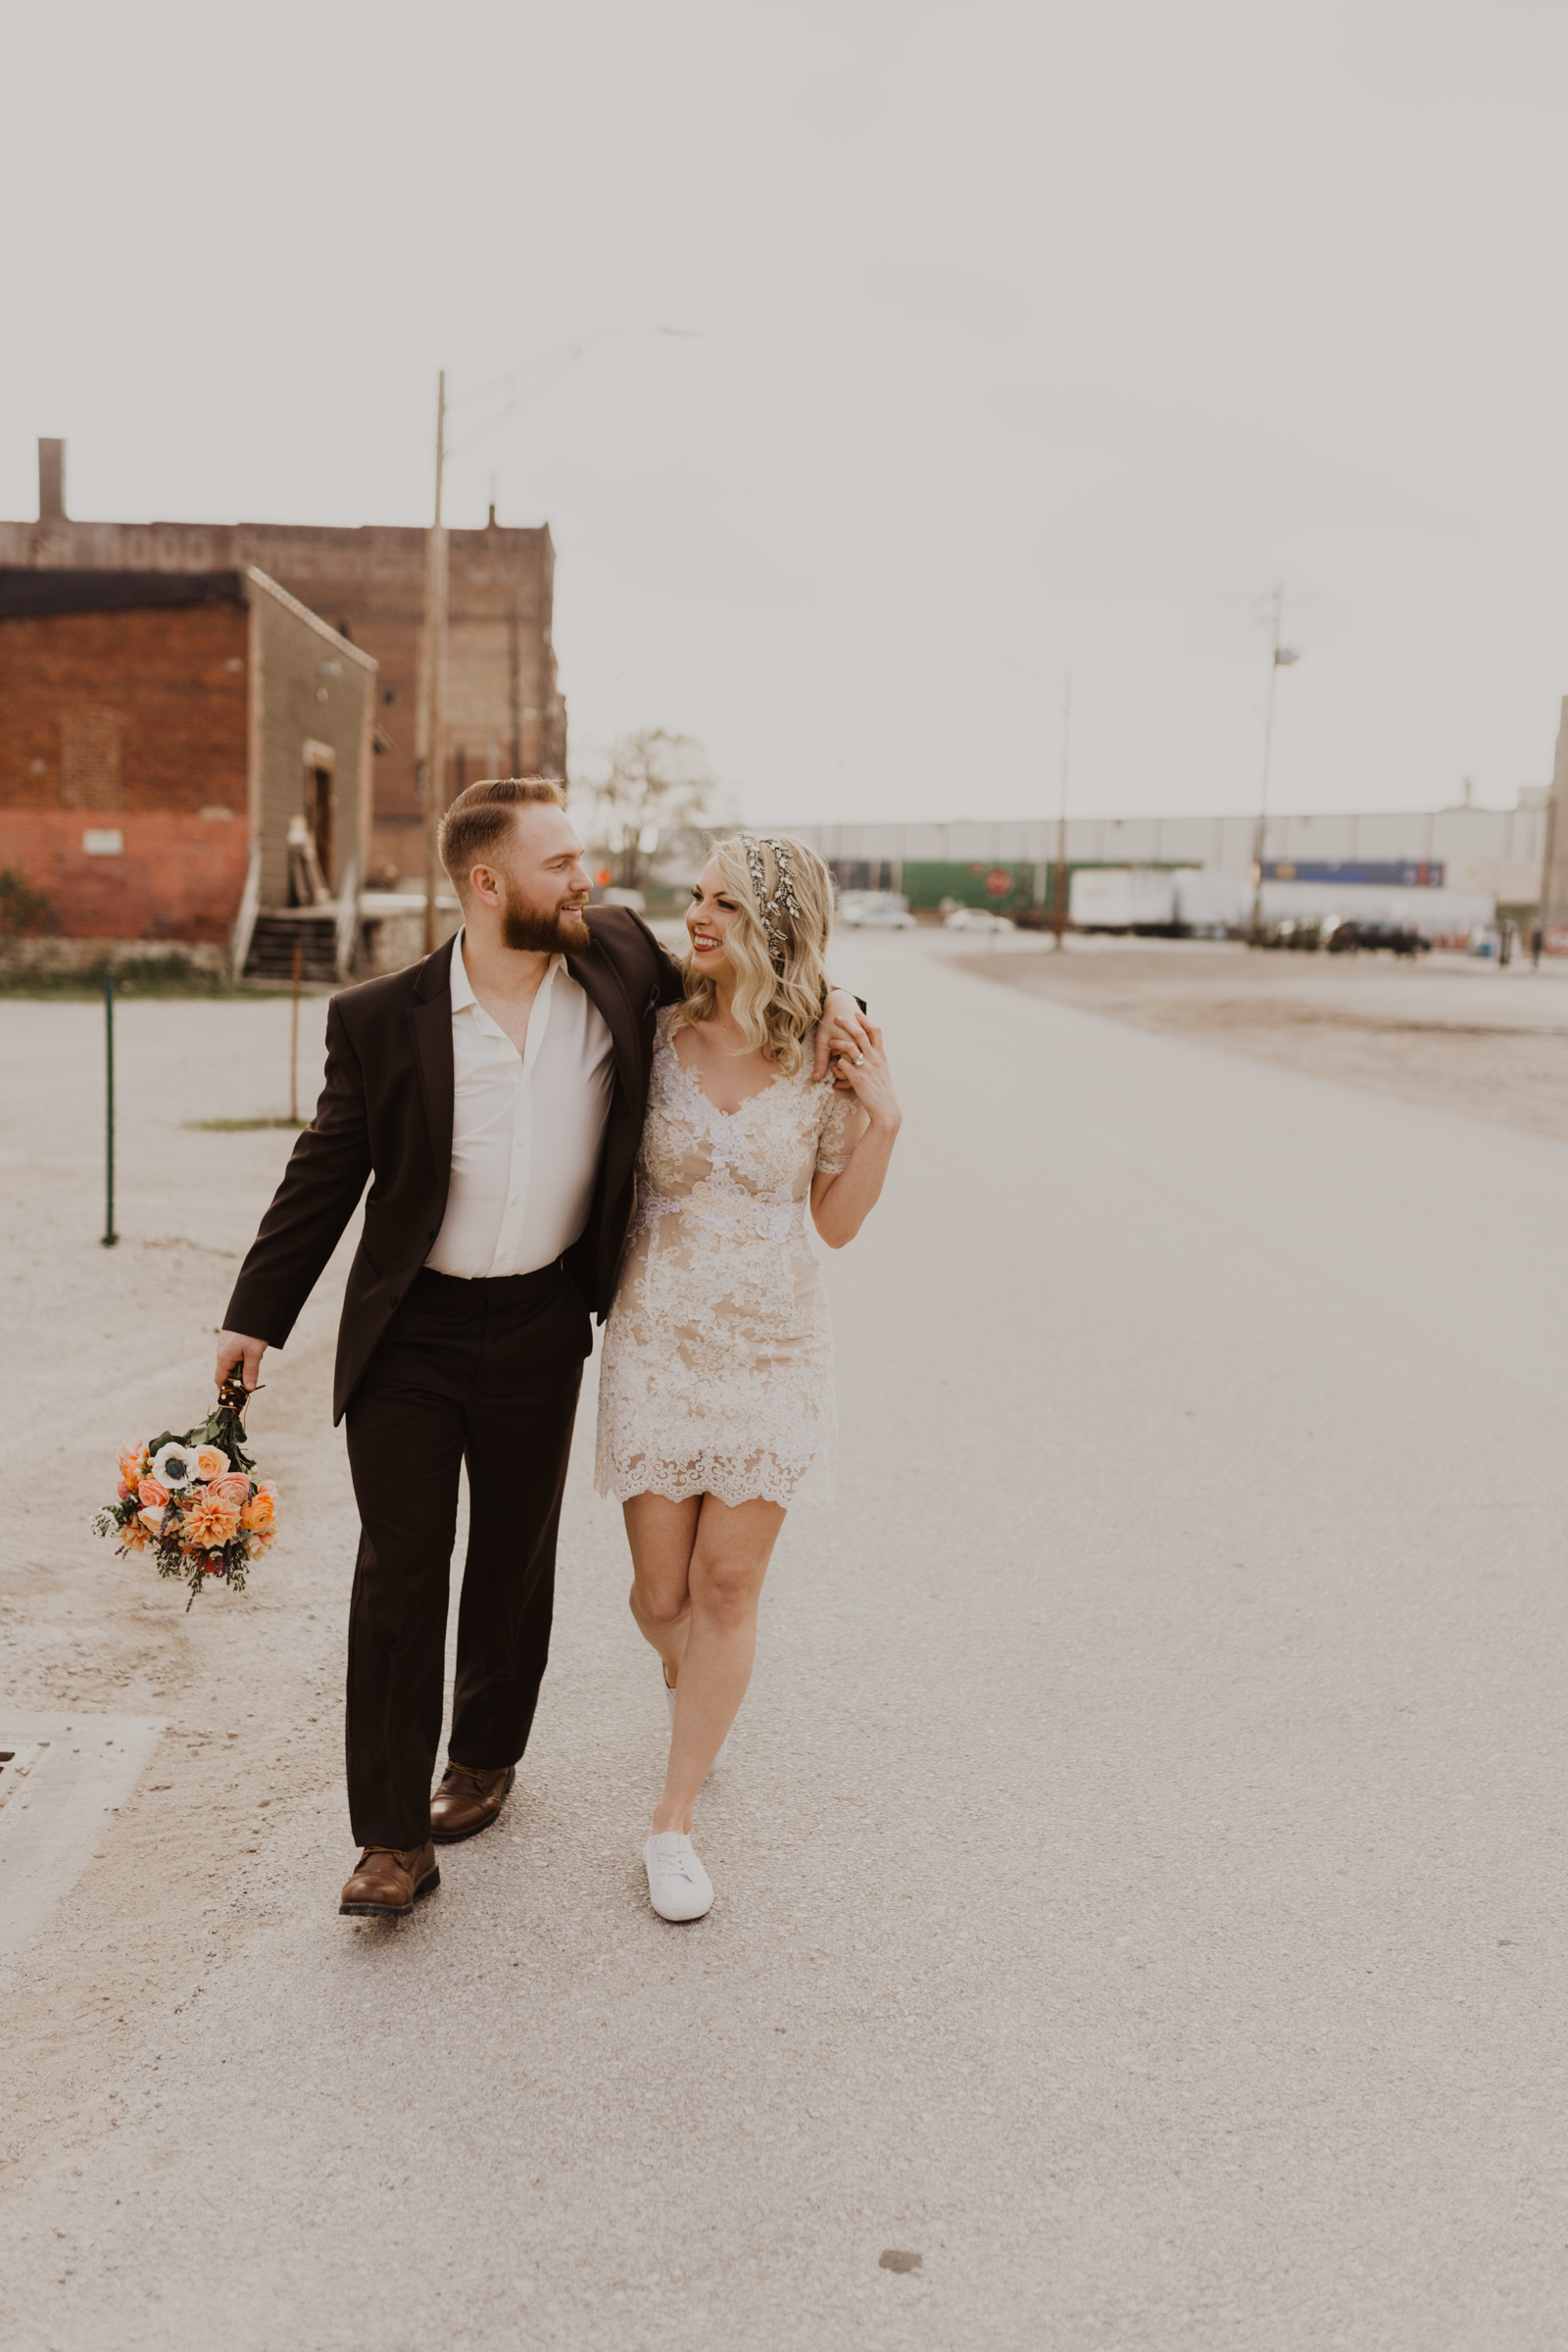 alyssa barletter photography styled shoot wedding inspiration kansas city west bottoms photographer motorcycle edgy intimate-35.jpg